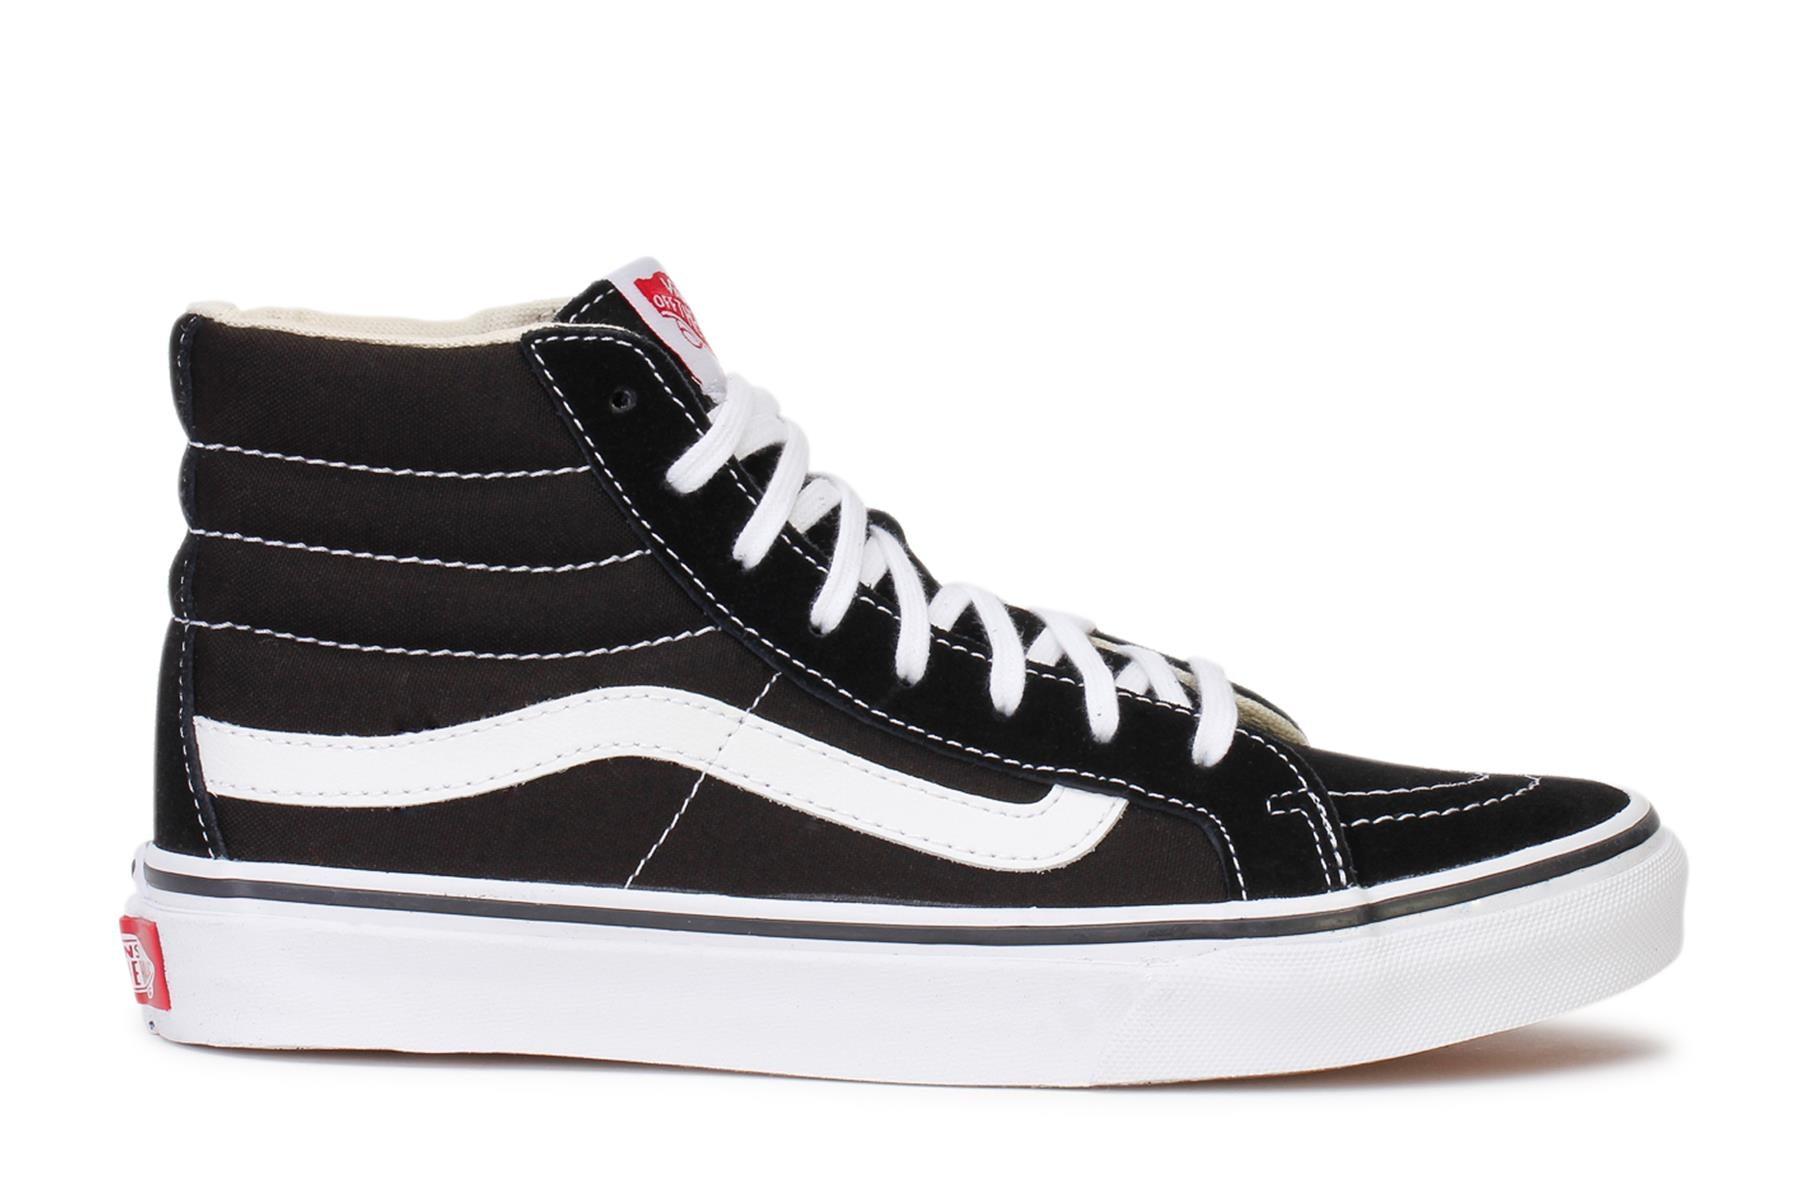 vans-unisex-sk8-hi-slim-sneakers-black-true-white-vn000qg36bt-main